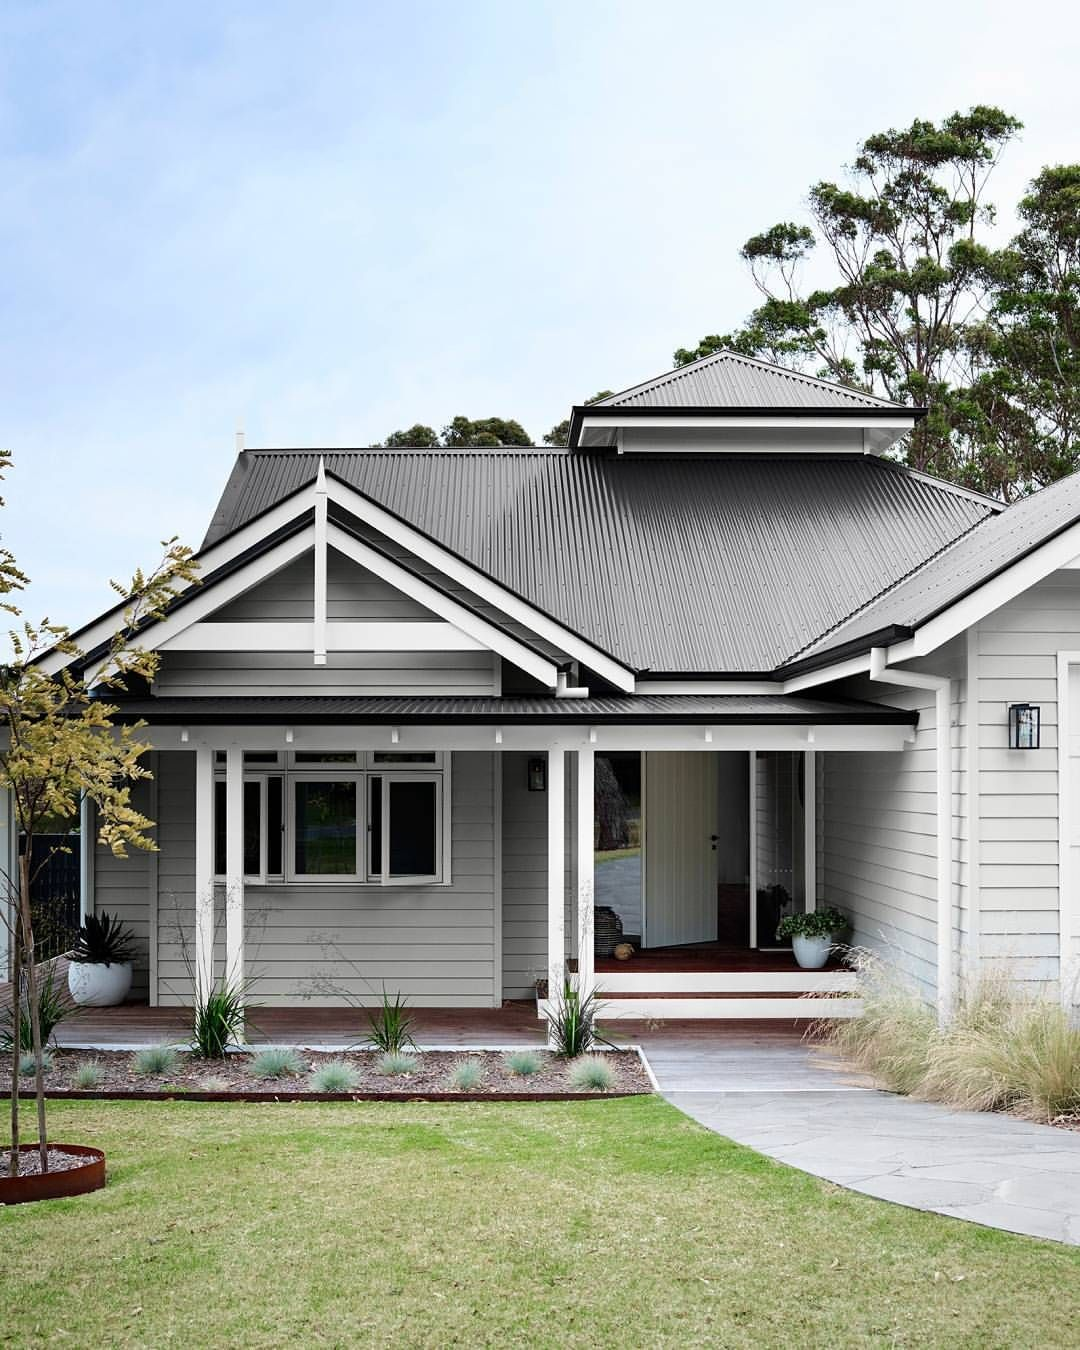 Traditional australia federation exterior inspirations paint - Image Result For Post War Weatherboard Houses Melbourne Rehab Houses Pinterest Weatherboard House Verandas And Pavilion